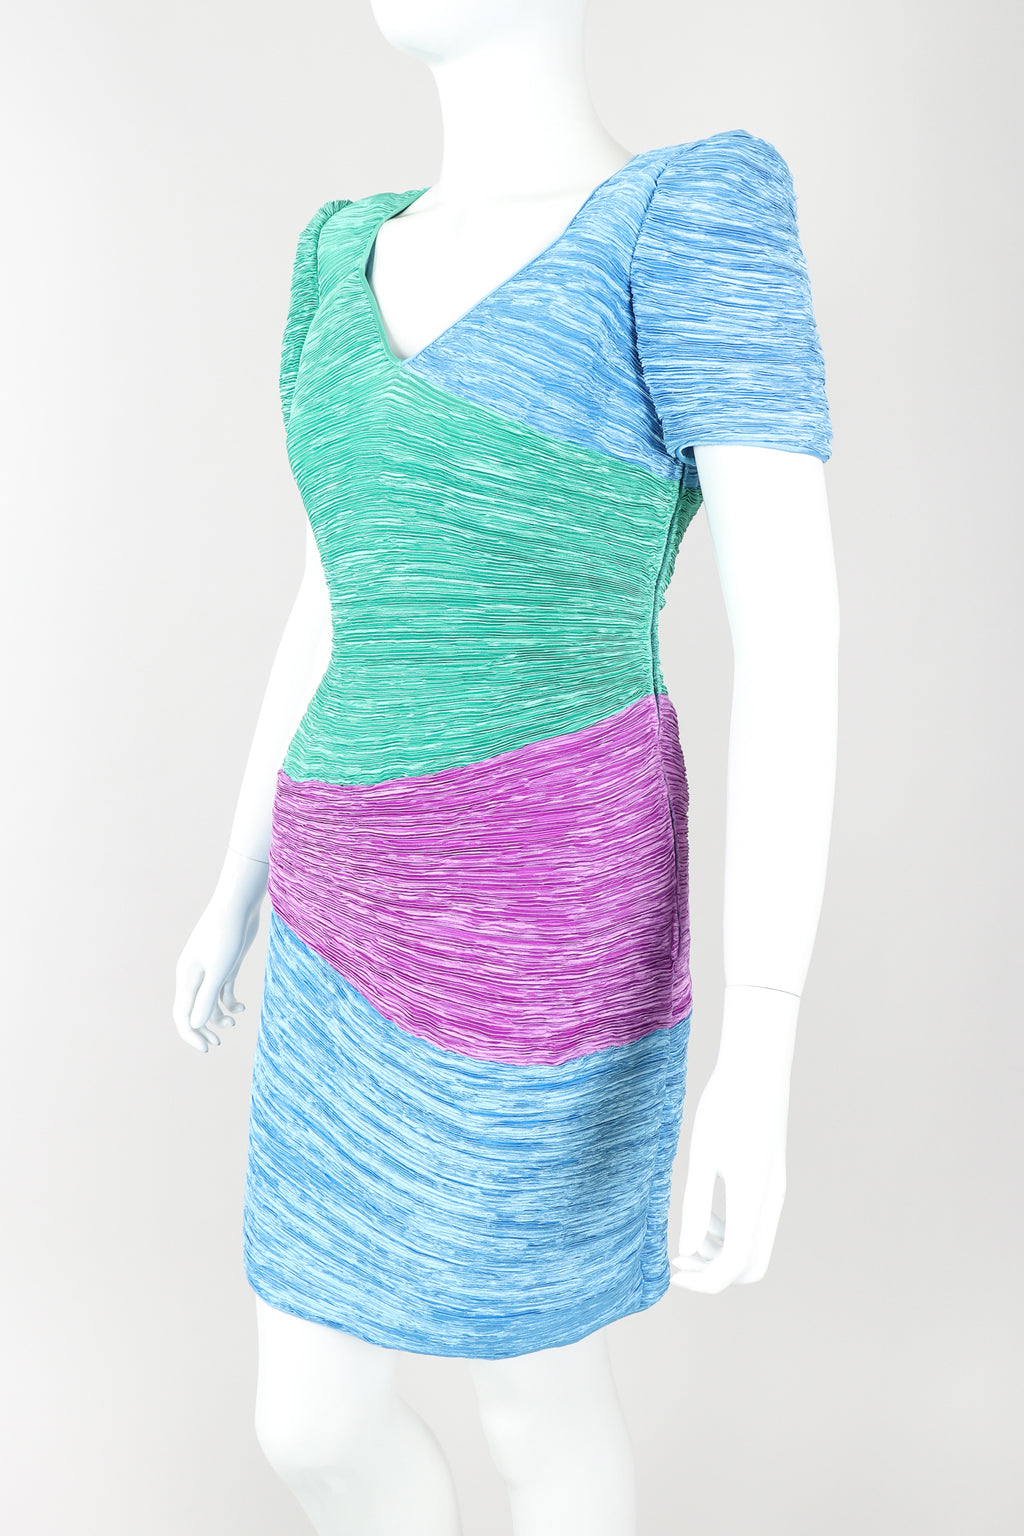 Recess Designer Consignment Vintage Mary McFadden Pleated Colorblock Cocktail Dress Los Angeles Resale Mariano Fortuny